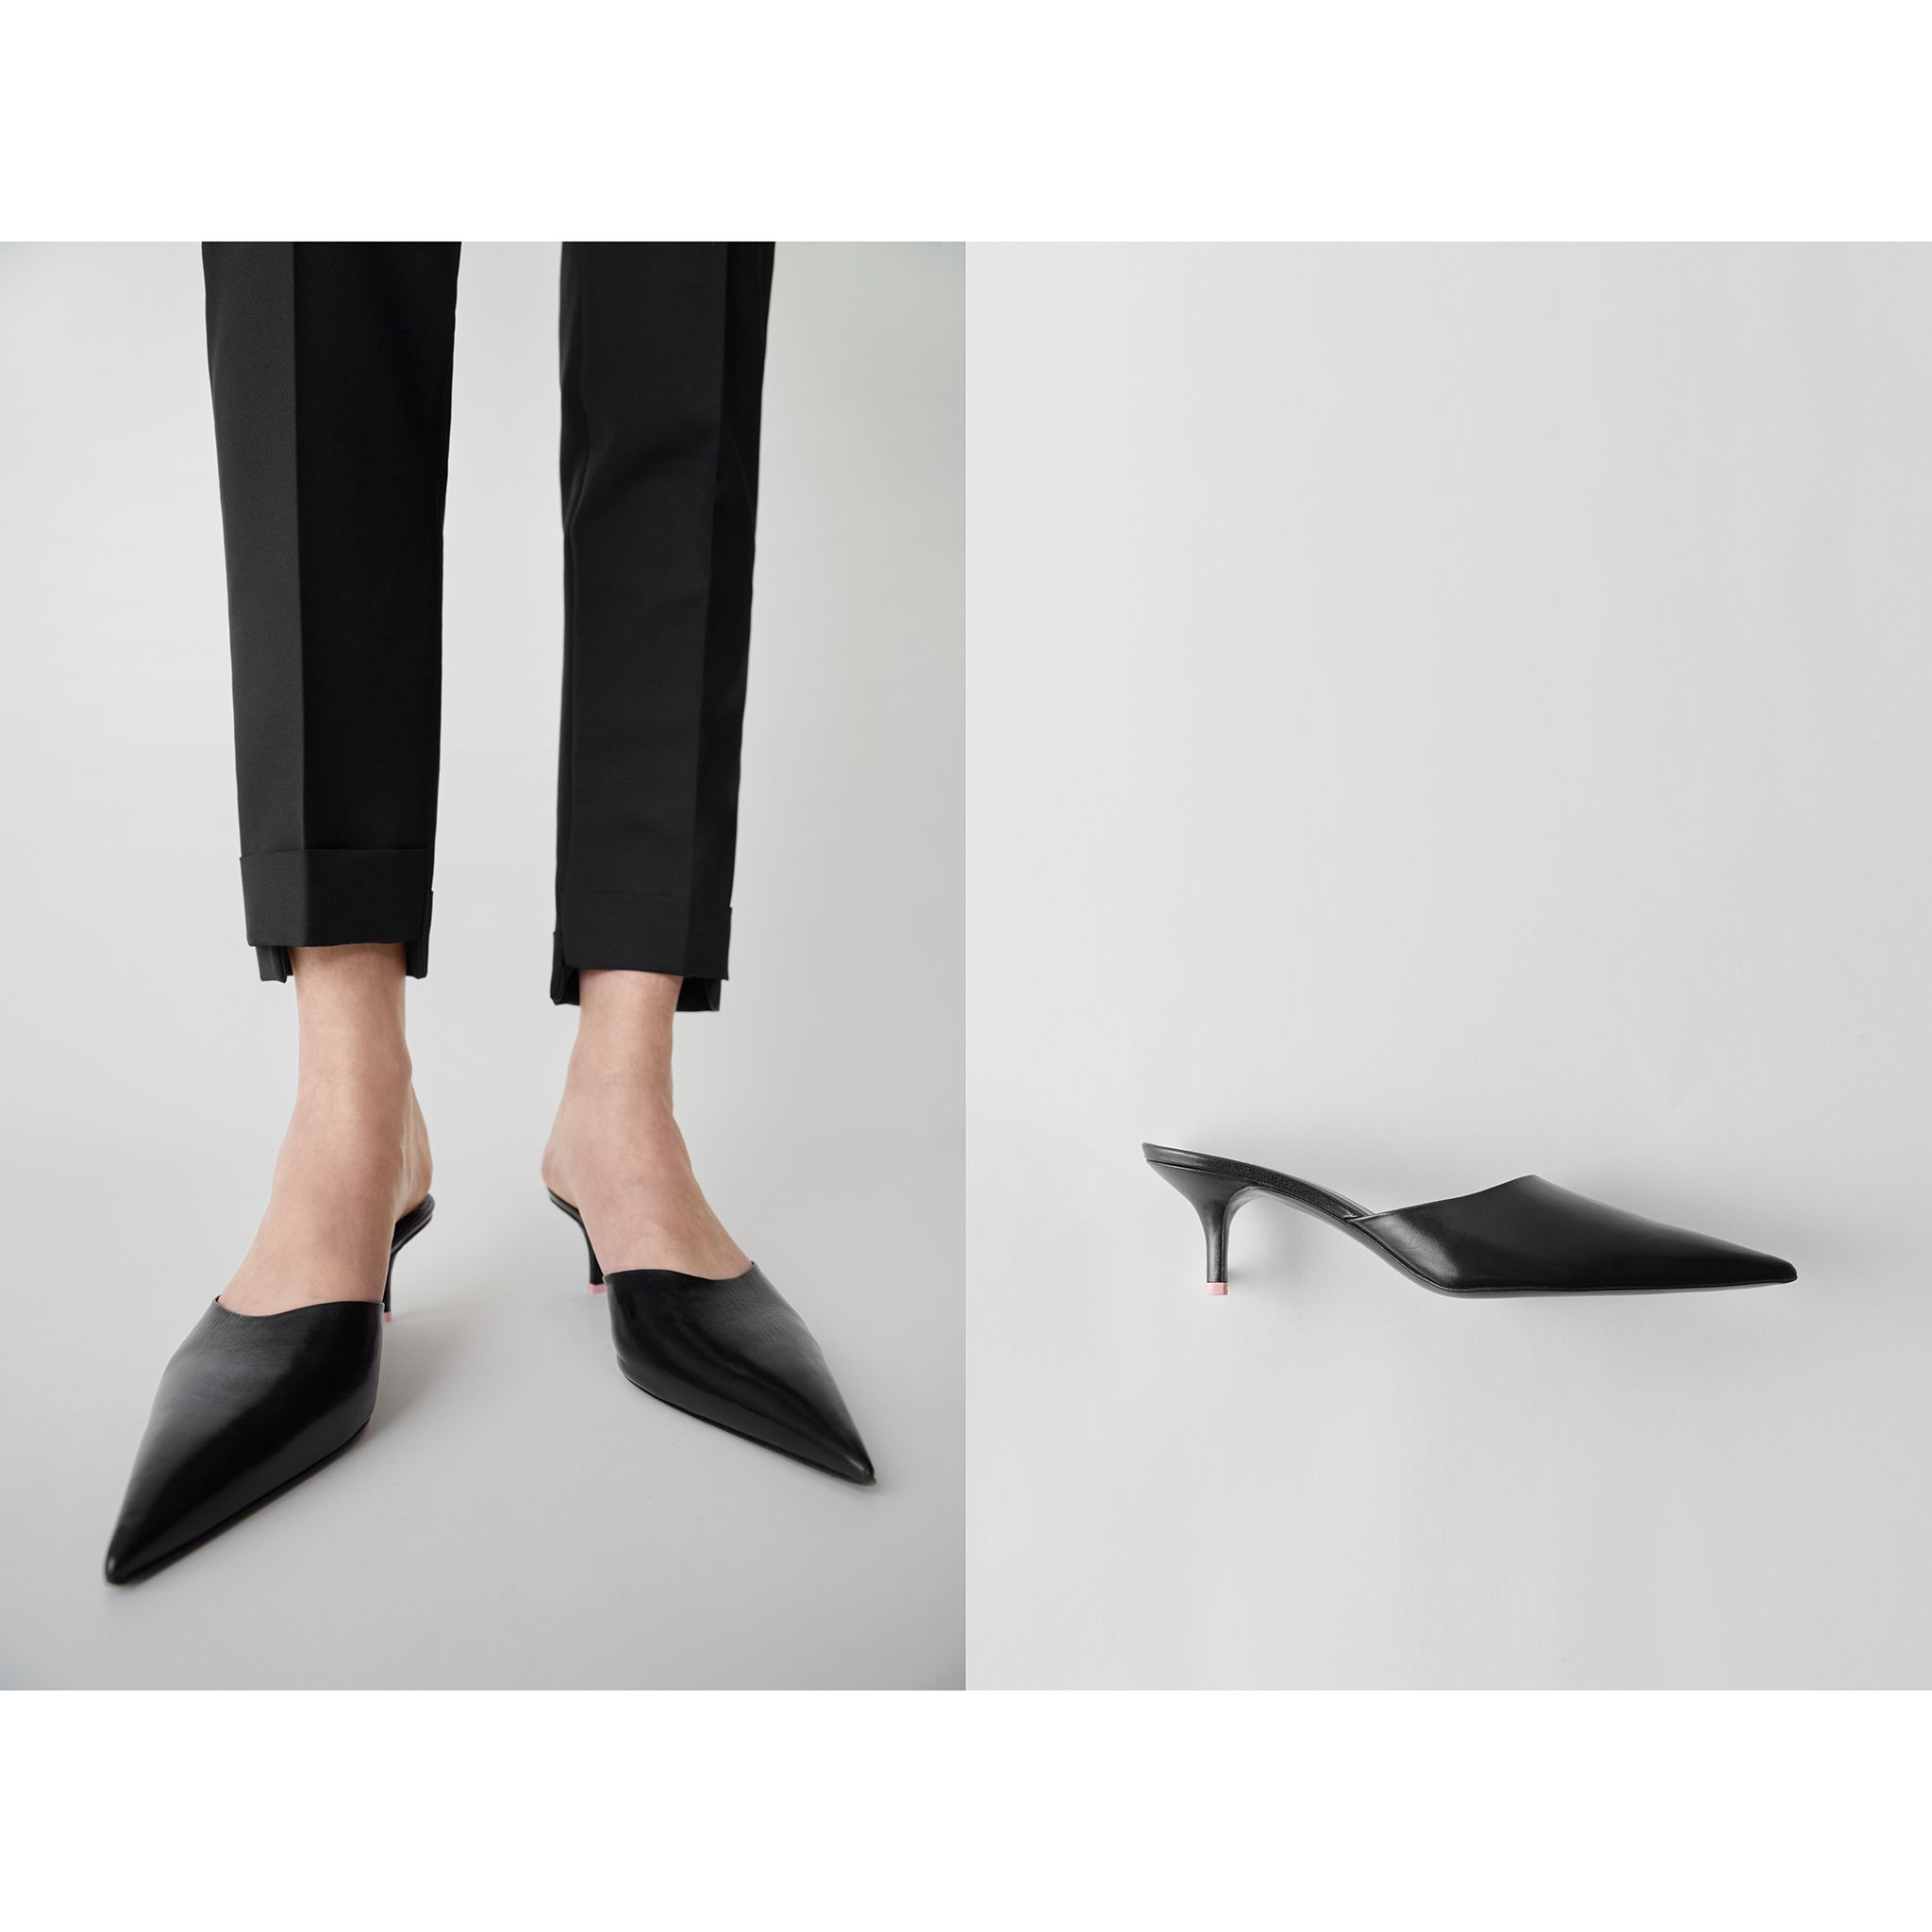 The #AcneStudios black mule with long